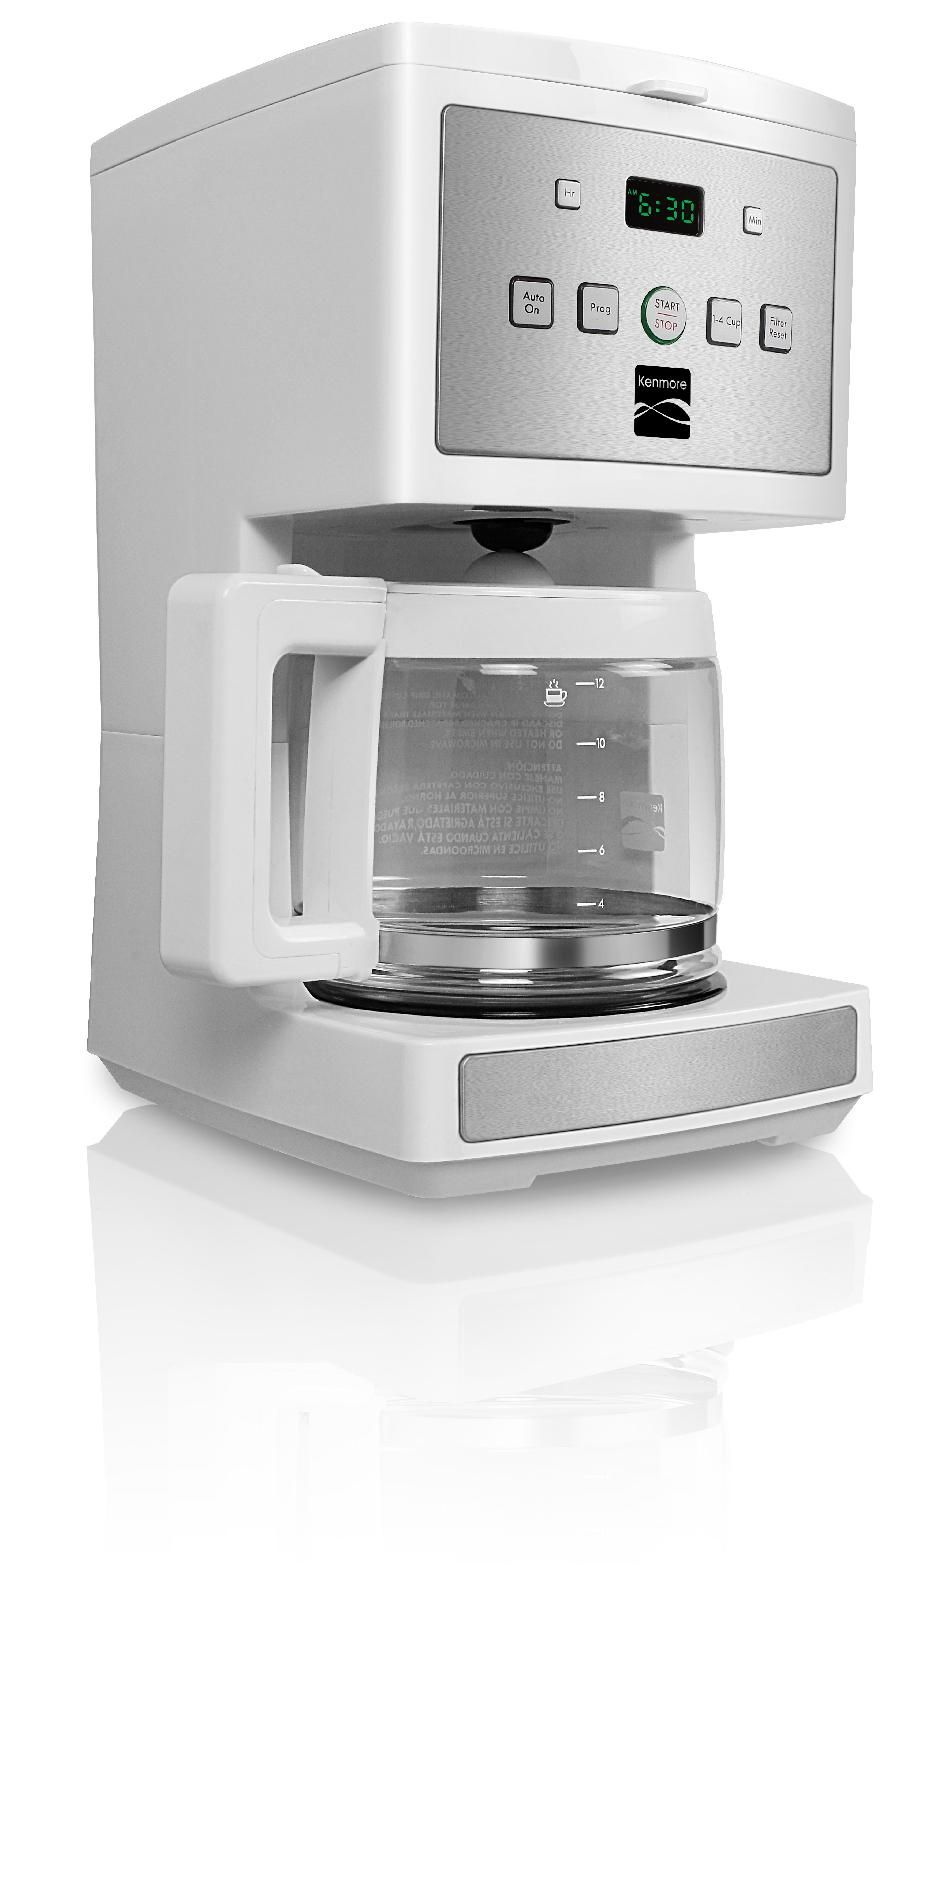 Kenmore 12-Cup Programmable Coffee Maker, White